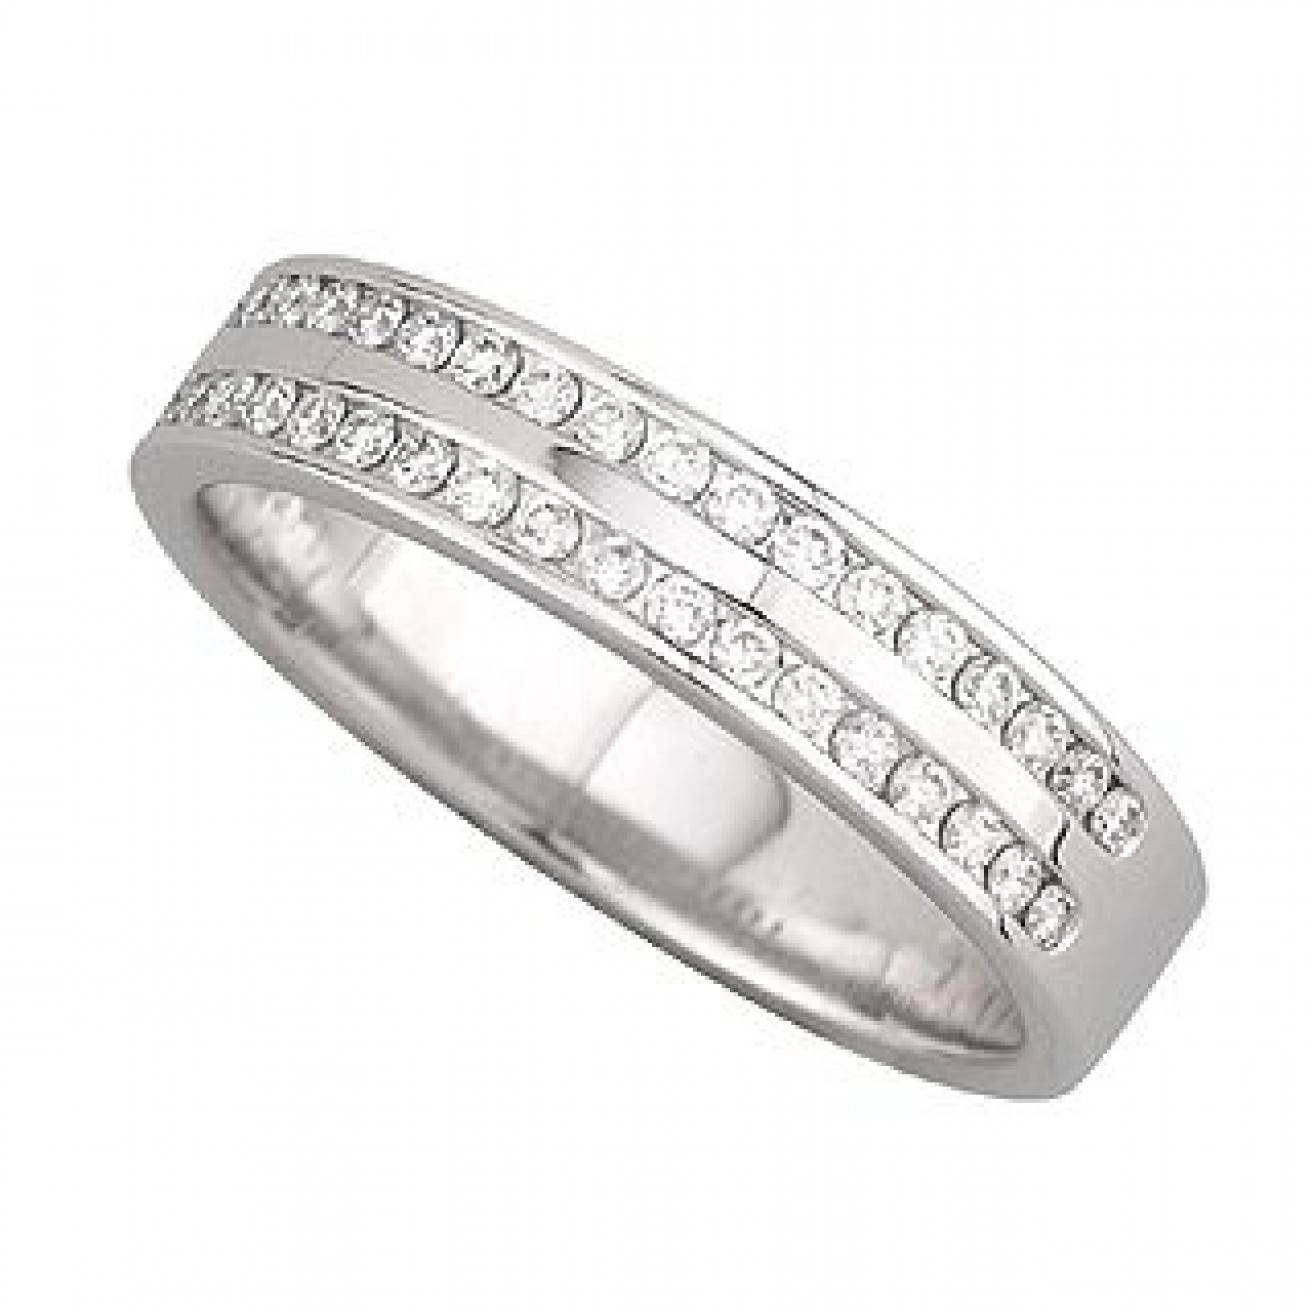 Buy Platinum Wedding Bands Online – Fraser Hart Intended For Platinum Diamond Wedding Rings (Gallery 3 of 15)